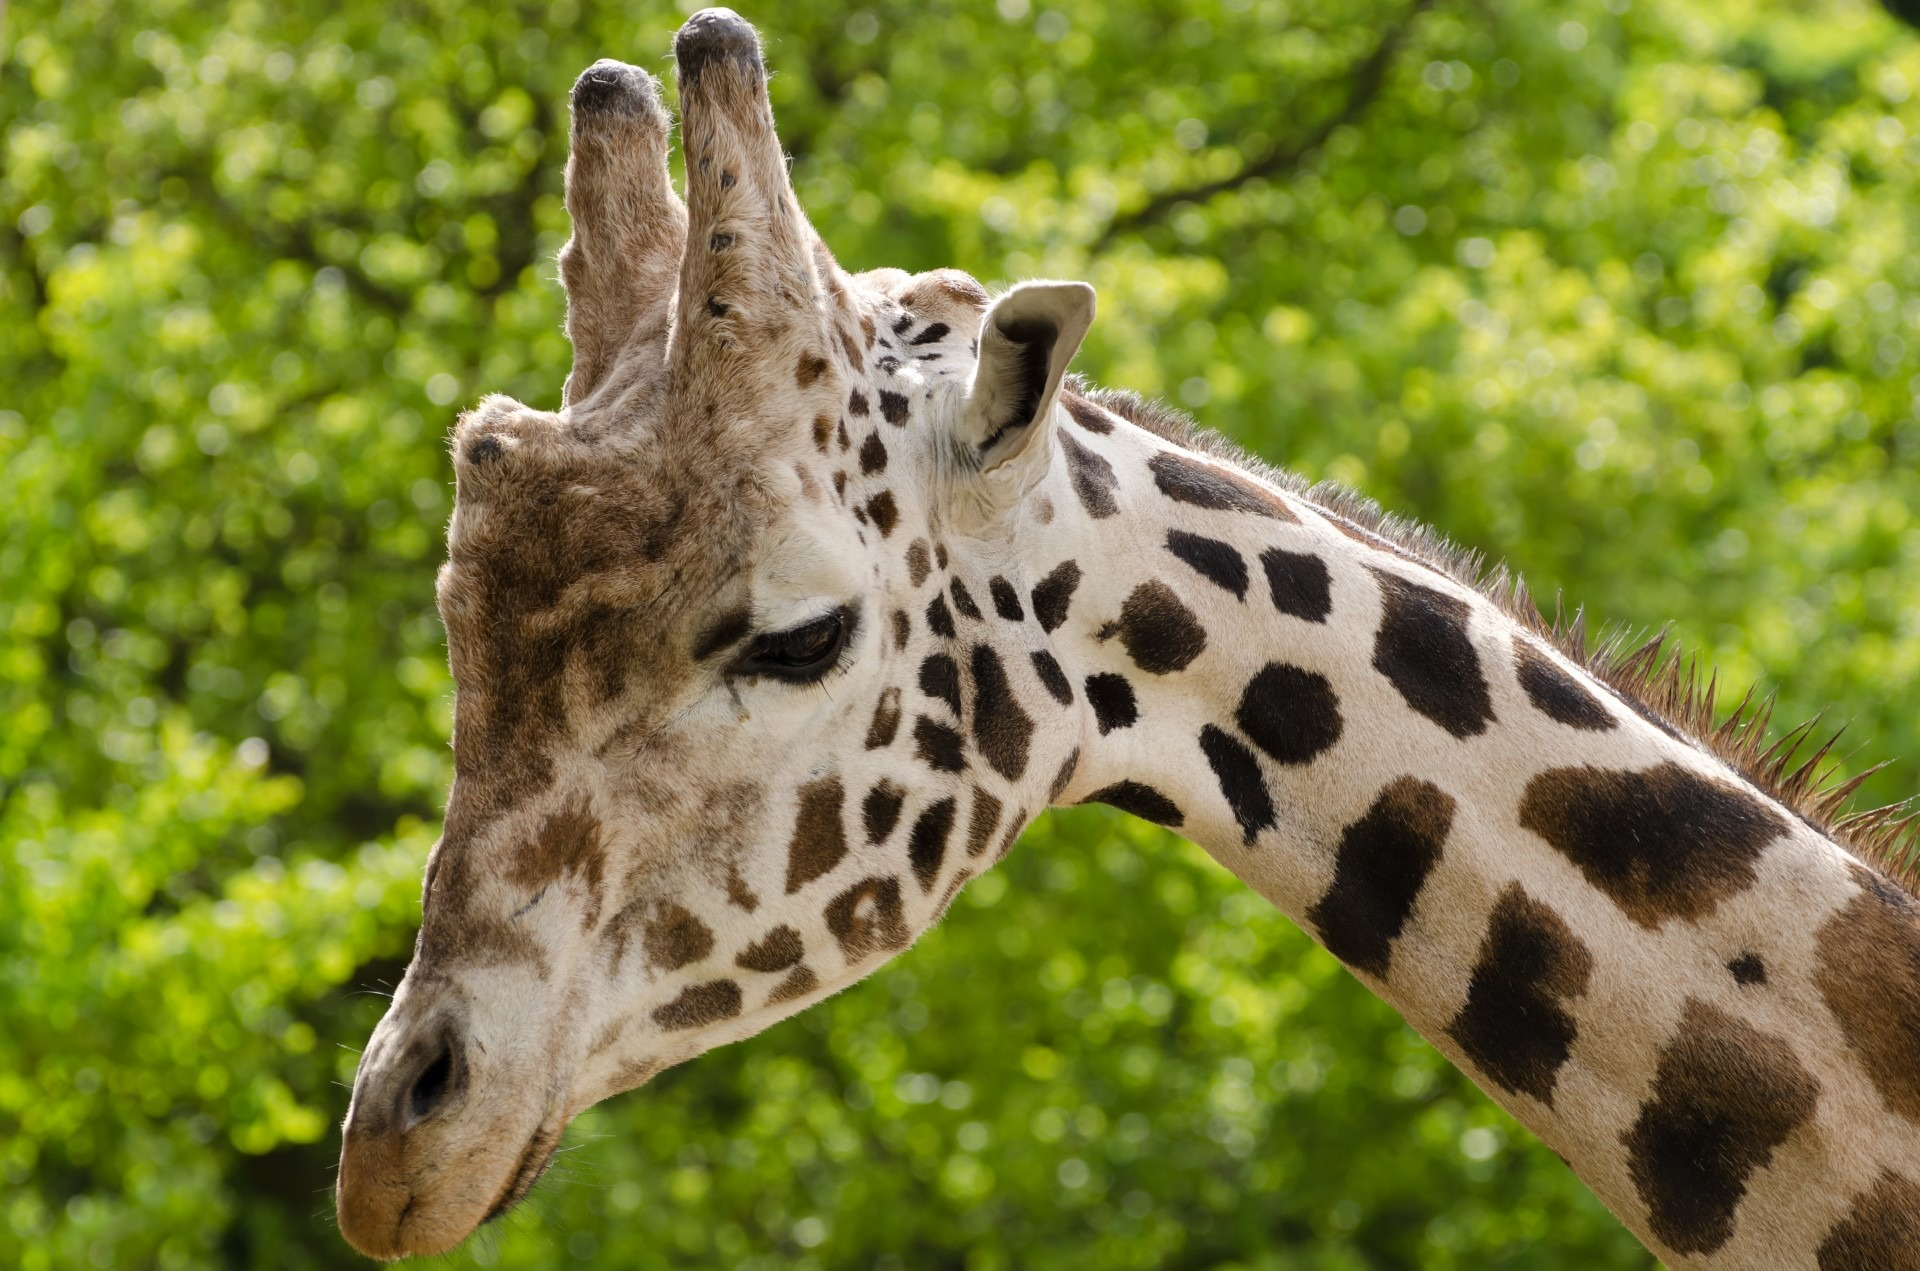 Cute Wallpapers Of The Beach Close Up Photography Of Giraffe 183 Free Stock Photo